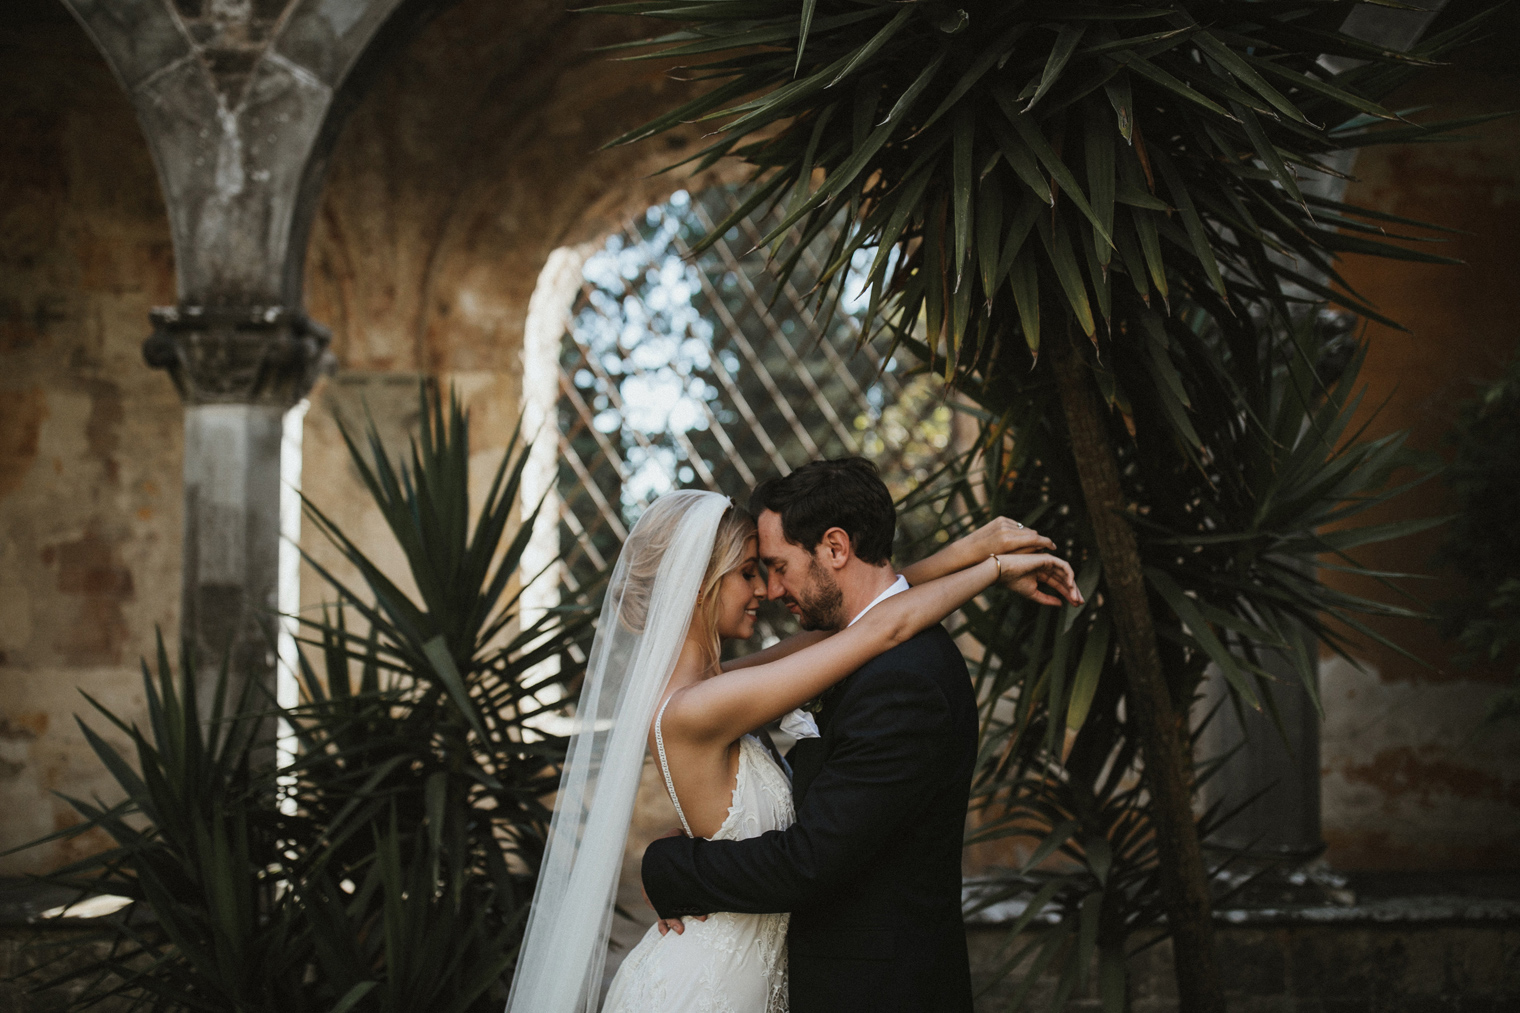 stunning couples portrait at wedding venue in Tuscany